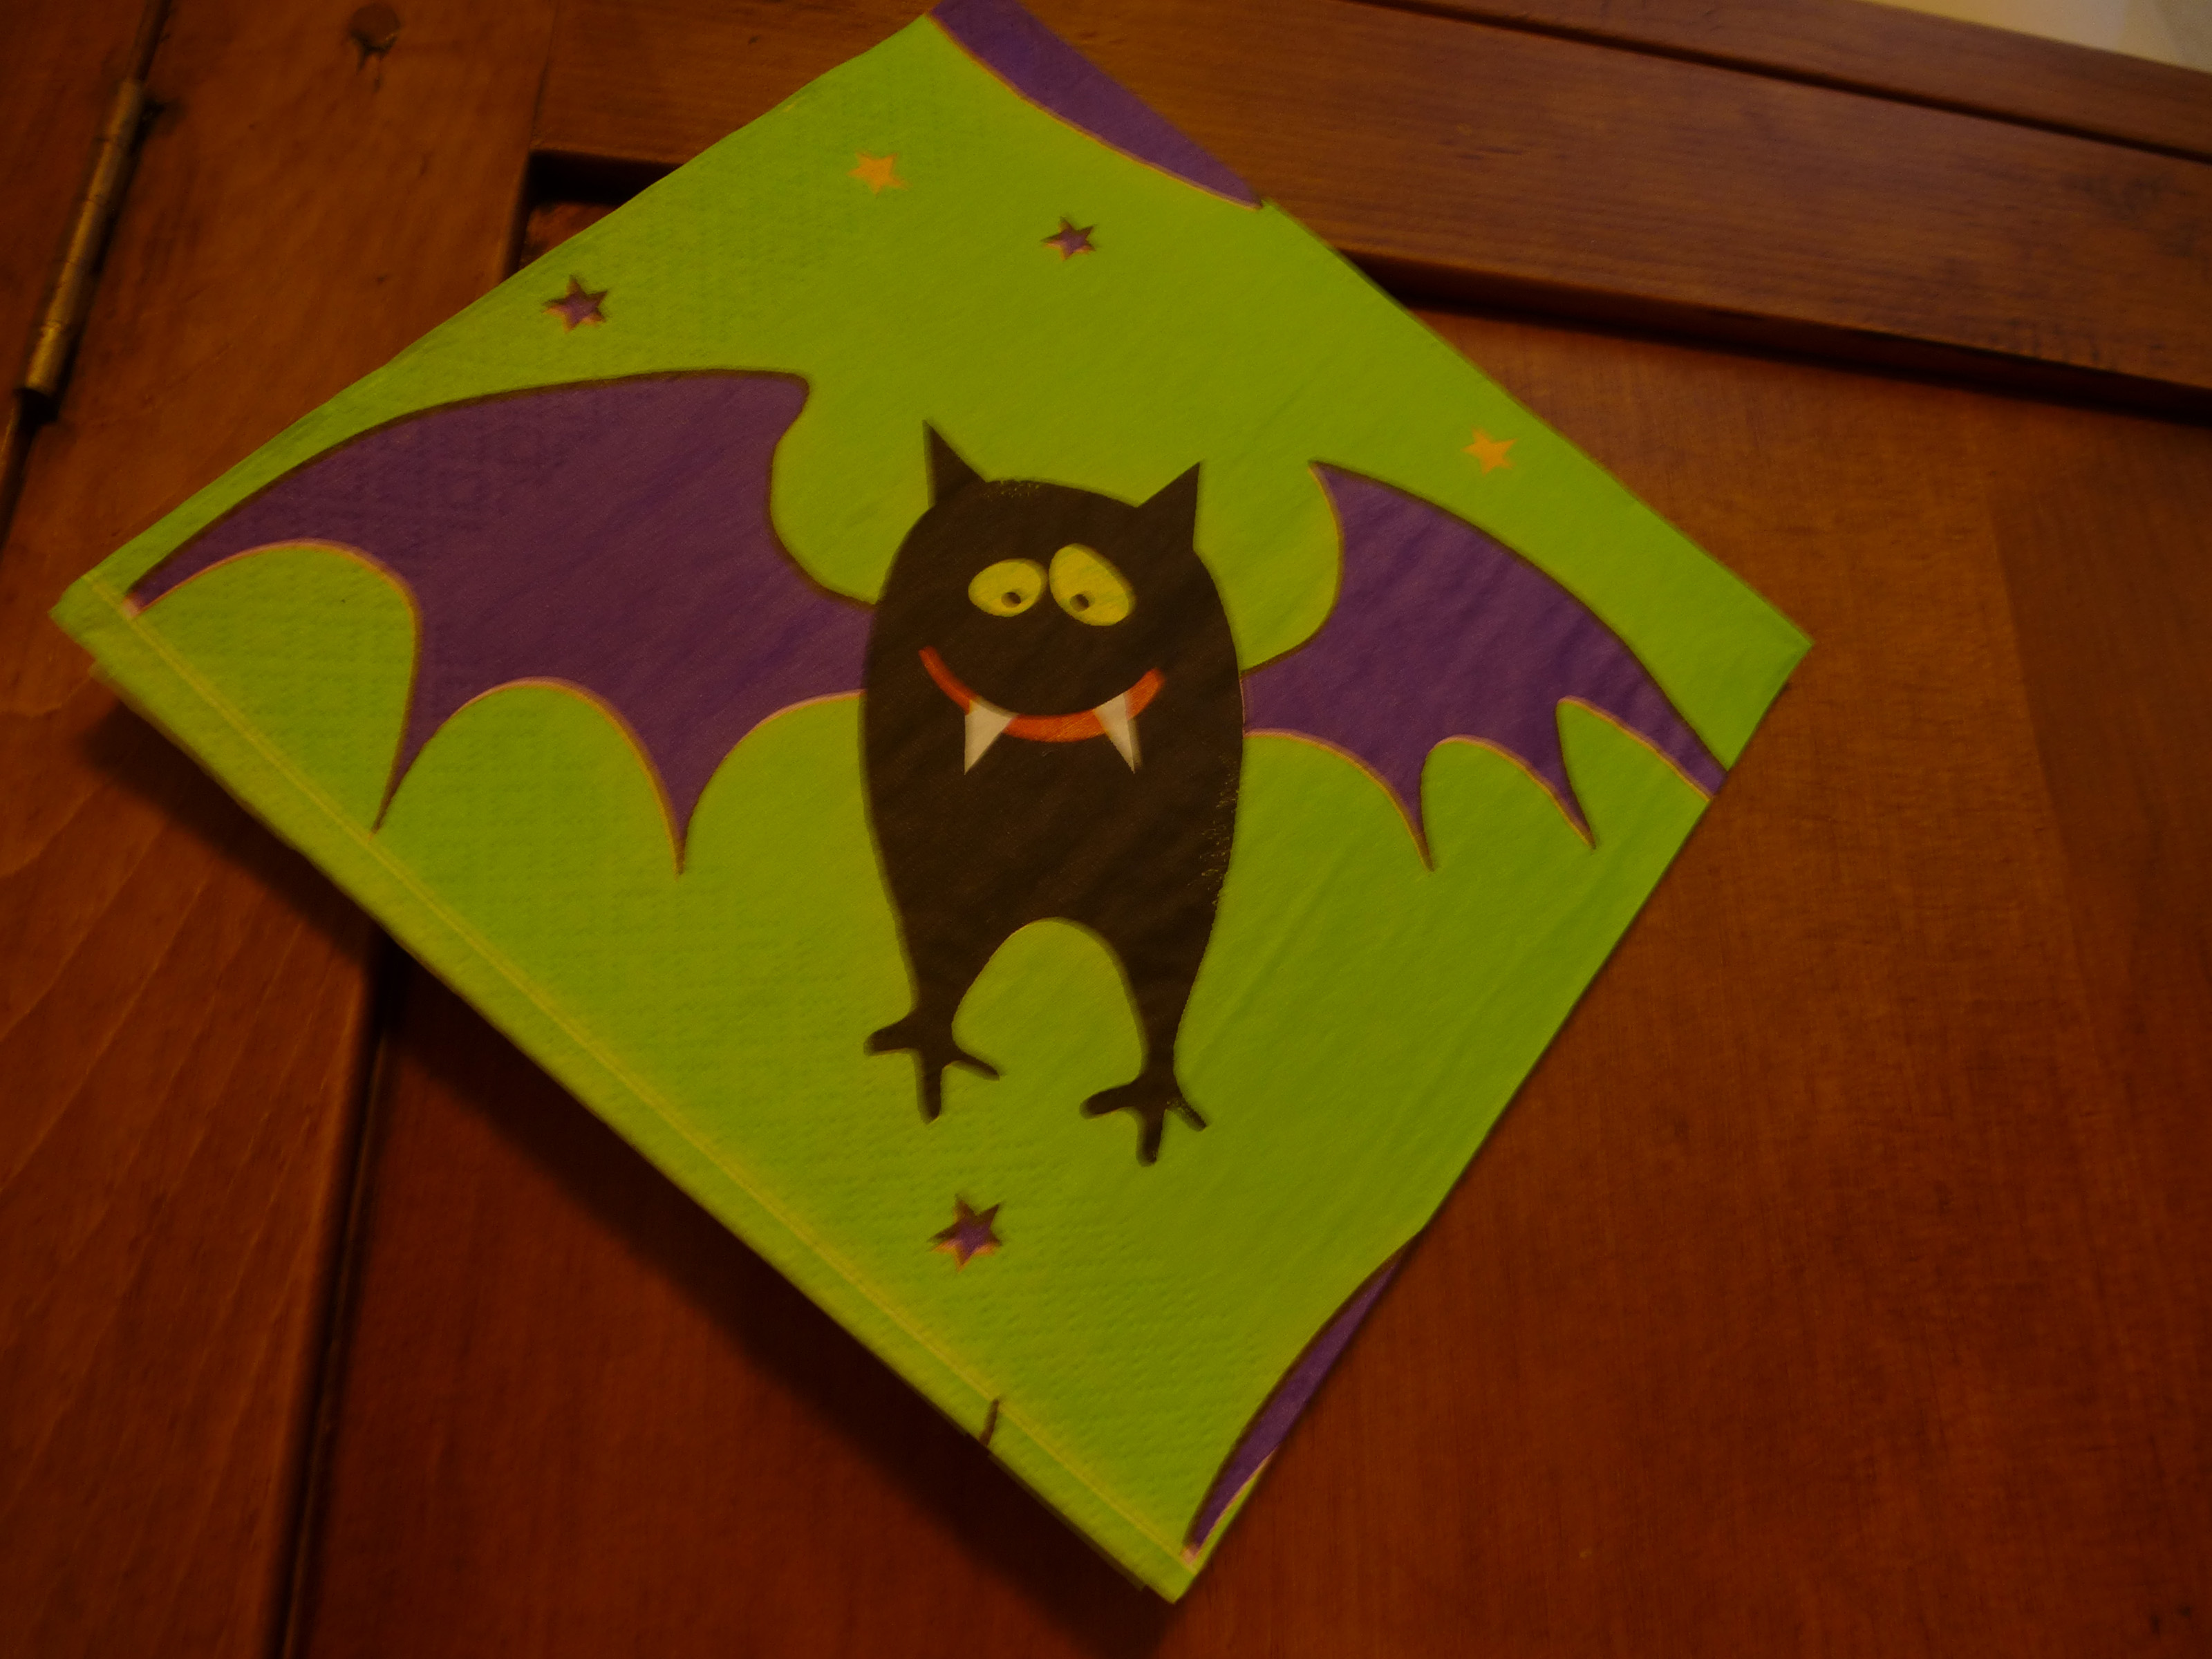 Comic Halloween bat decoration with a scary ferocious little cartoon bat with outspread wings and fangs